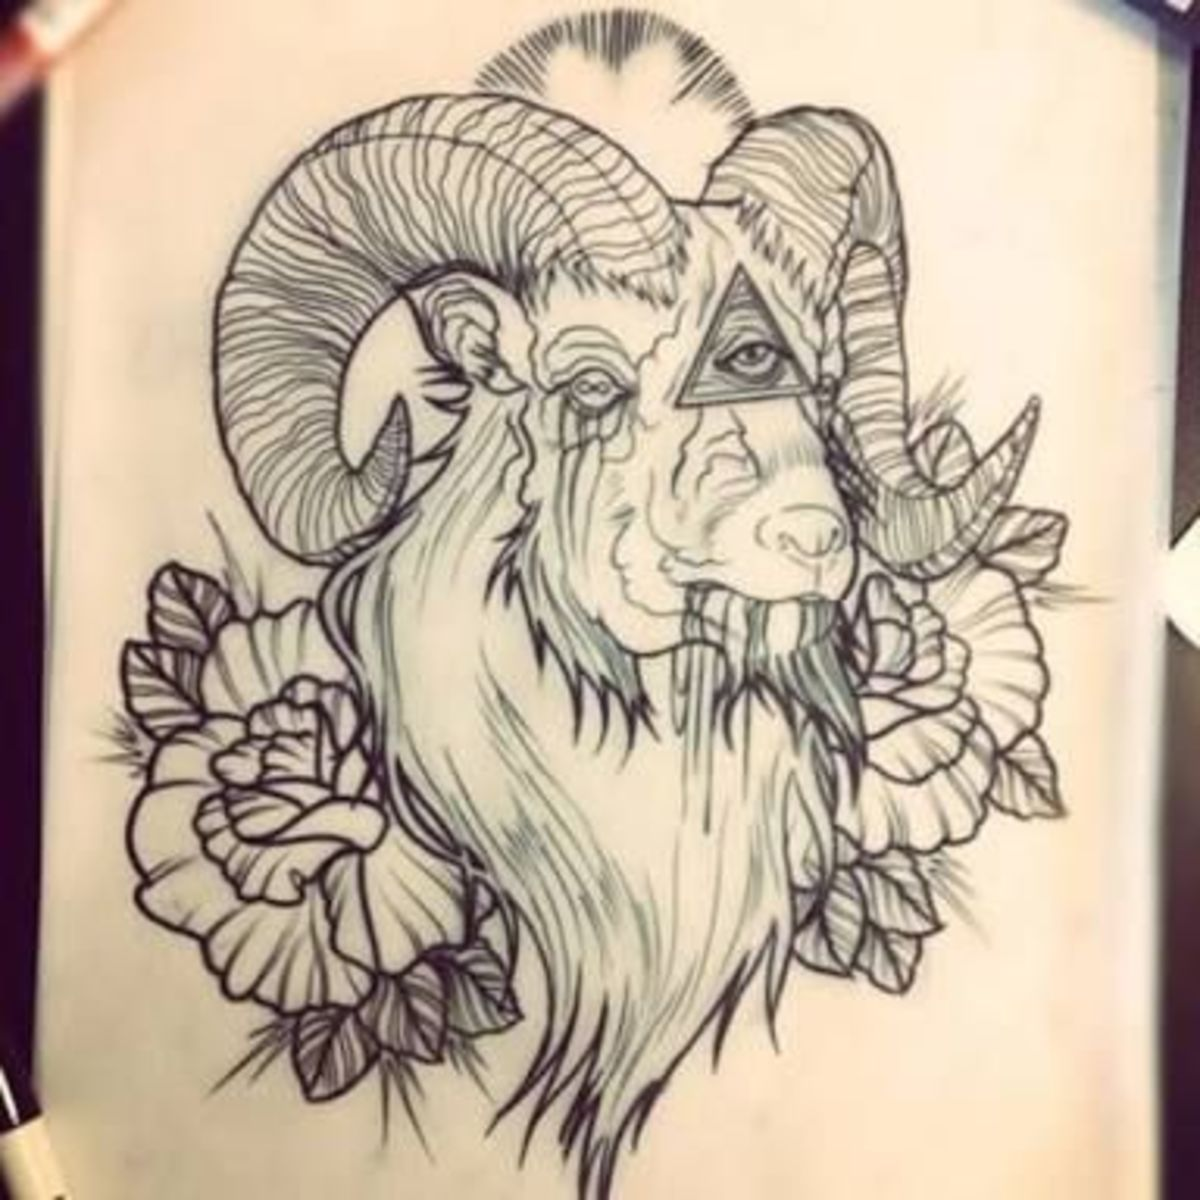 All seeing eye Aries tattoo sketch.